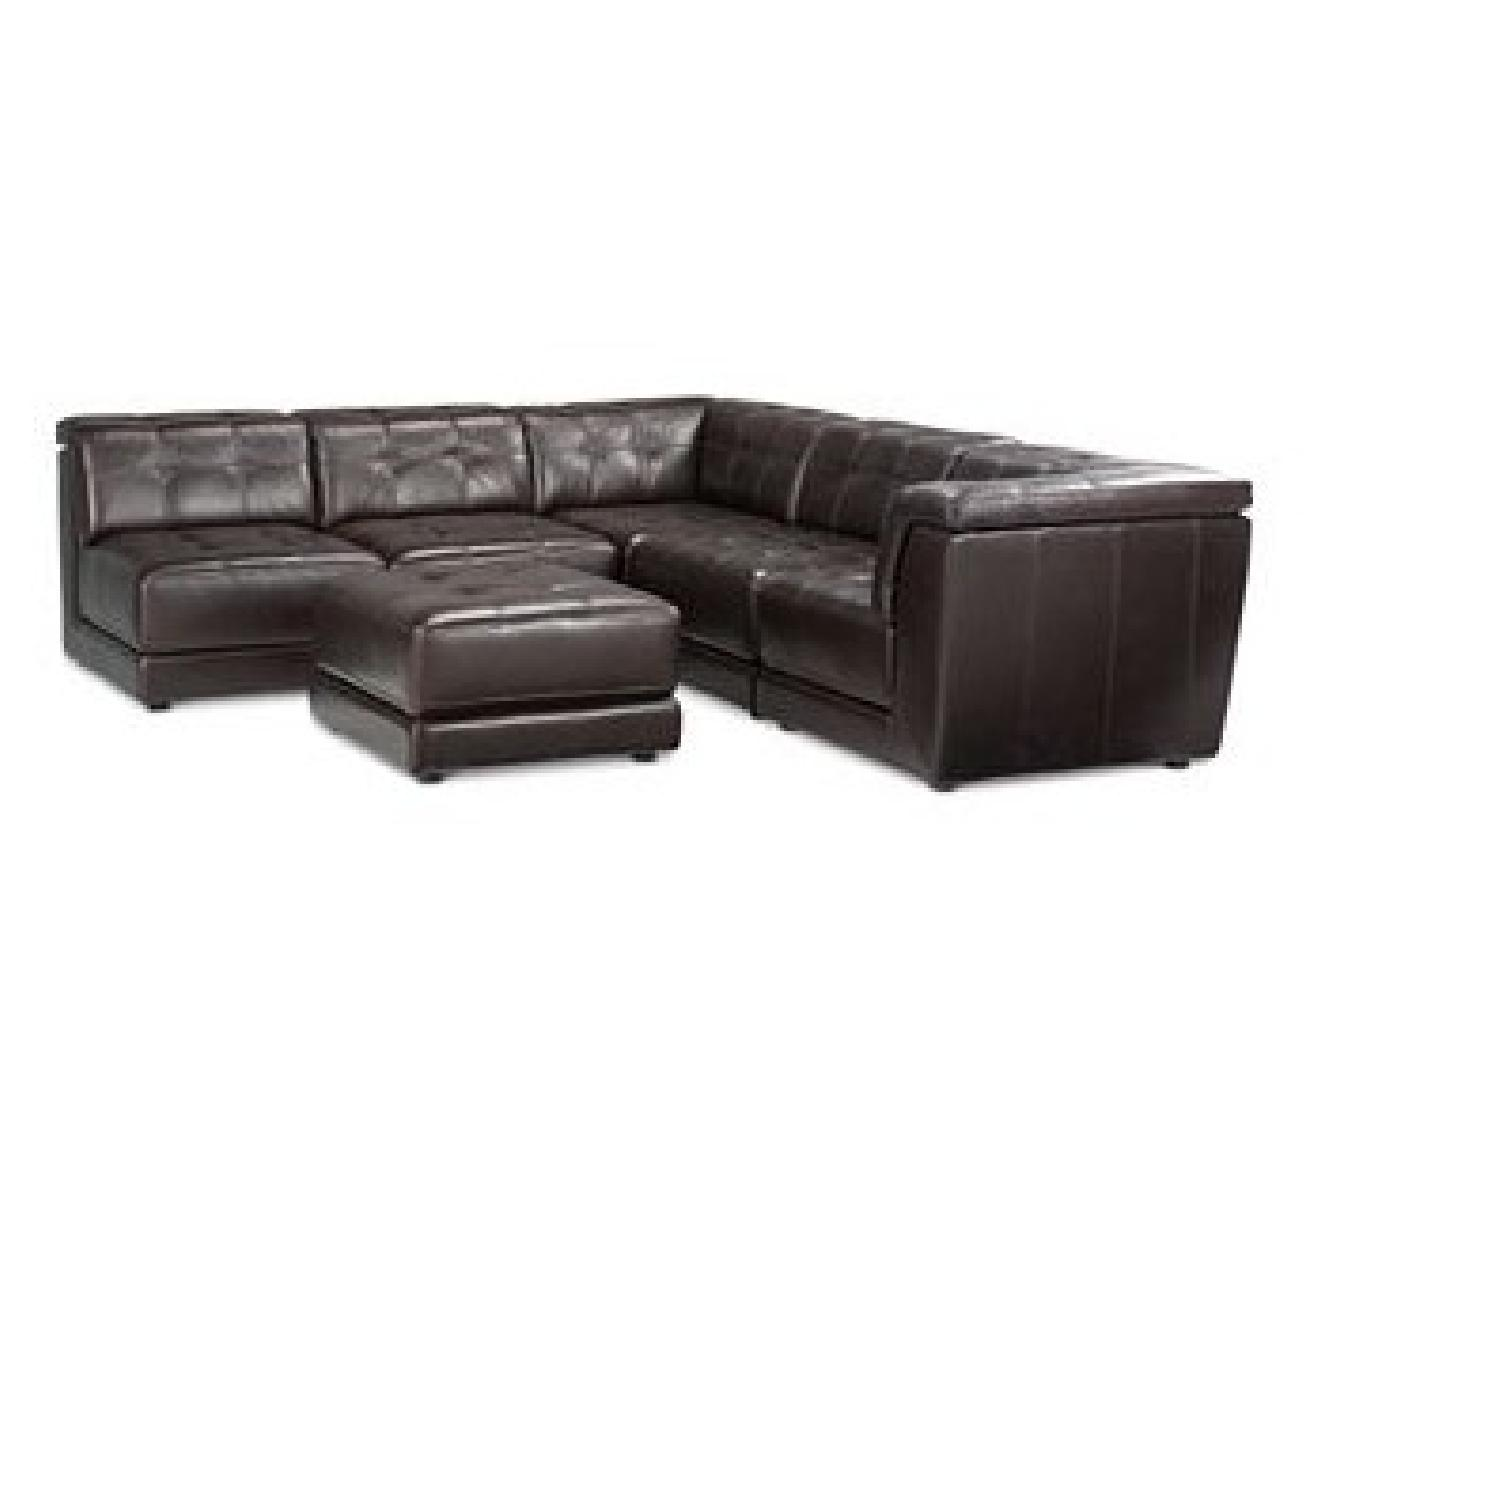 Macyu0027s Stacey Leather 6 Piece Sectional Sofa ...  sc 1 st  AptDeco : sectional sofa macys - Sectionals, Sofas & Couches